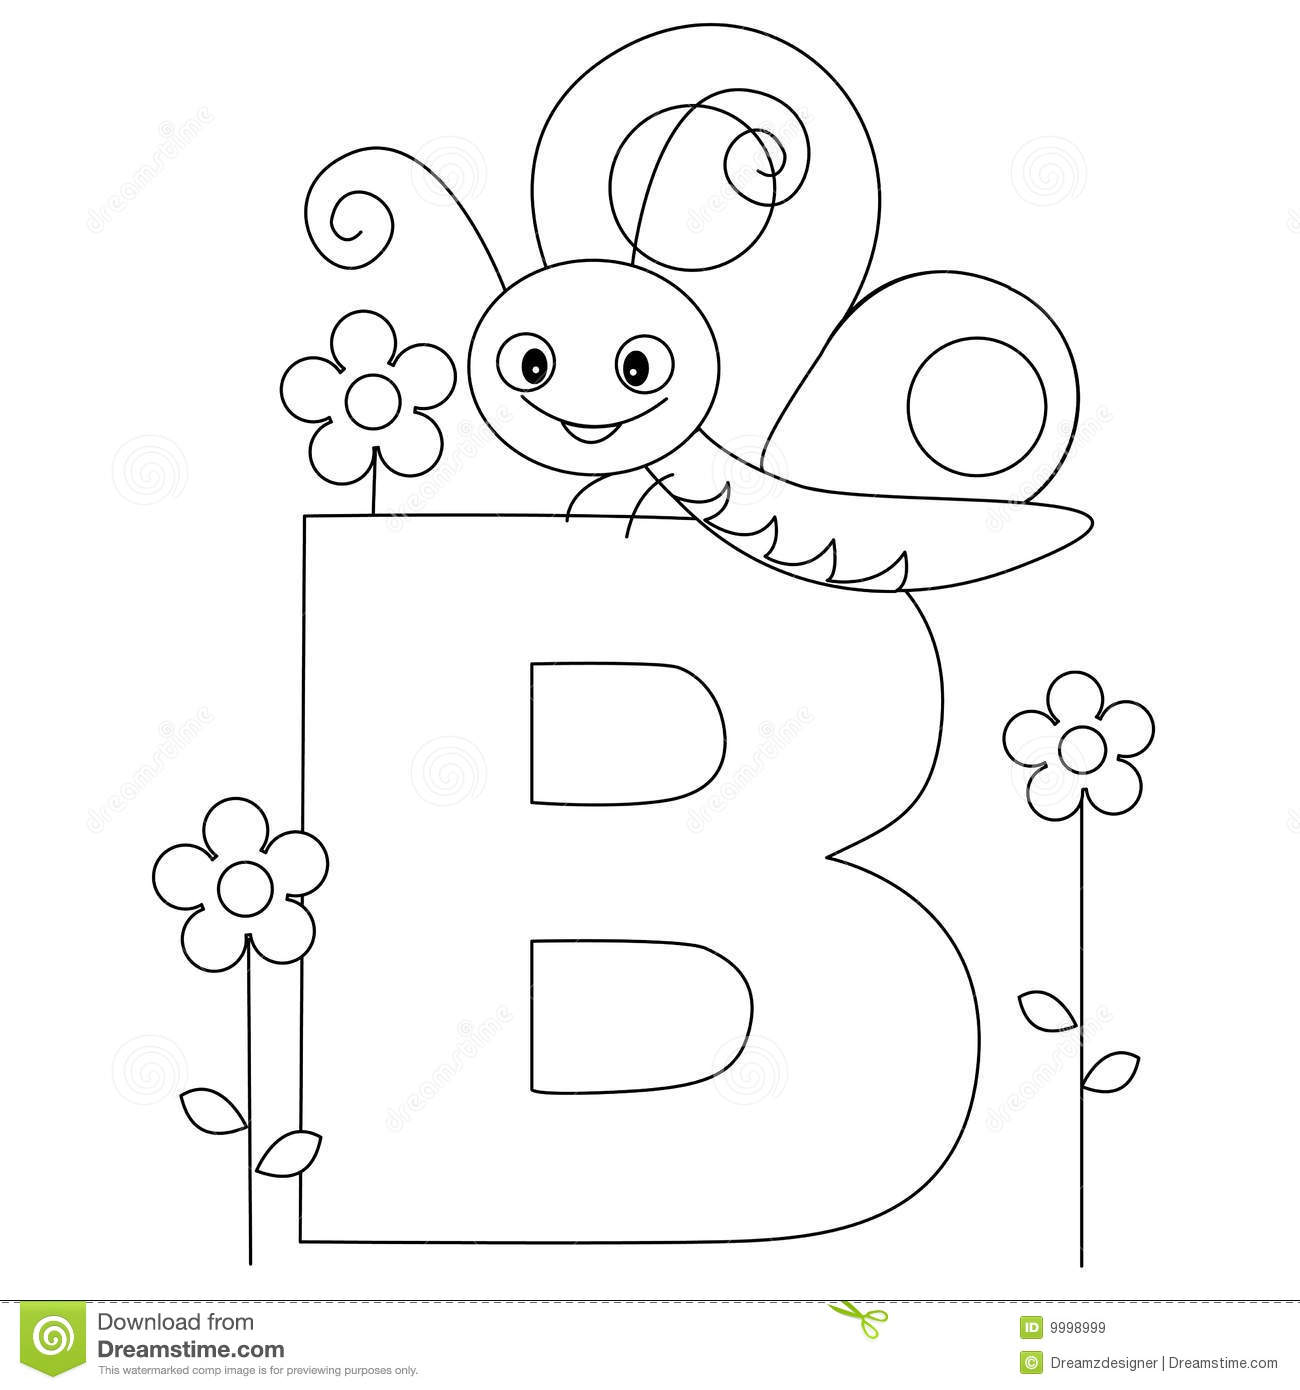 additionally 1451874171cute bear x alphabet s53d5 as well alphabet coloring pages Letter M in addition  besides 1451875767cute bear in w free alphabet sda12 likewise 1451875750cute bear alphabet s0515 together with letter d 6 coloring page together with Letter M with Cute Teddy Bear Coloring Page together with GetColoringPages org AlphabetMonstersJ besides unicorn cute alphabet coloring pages free alphabet coloring further . on cute letters coloring pages